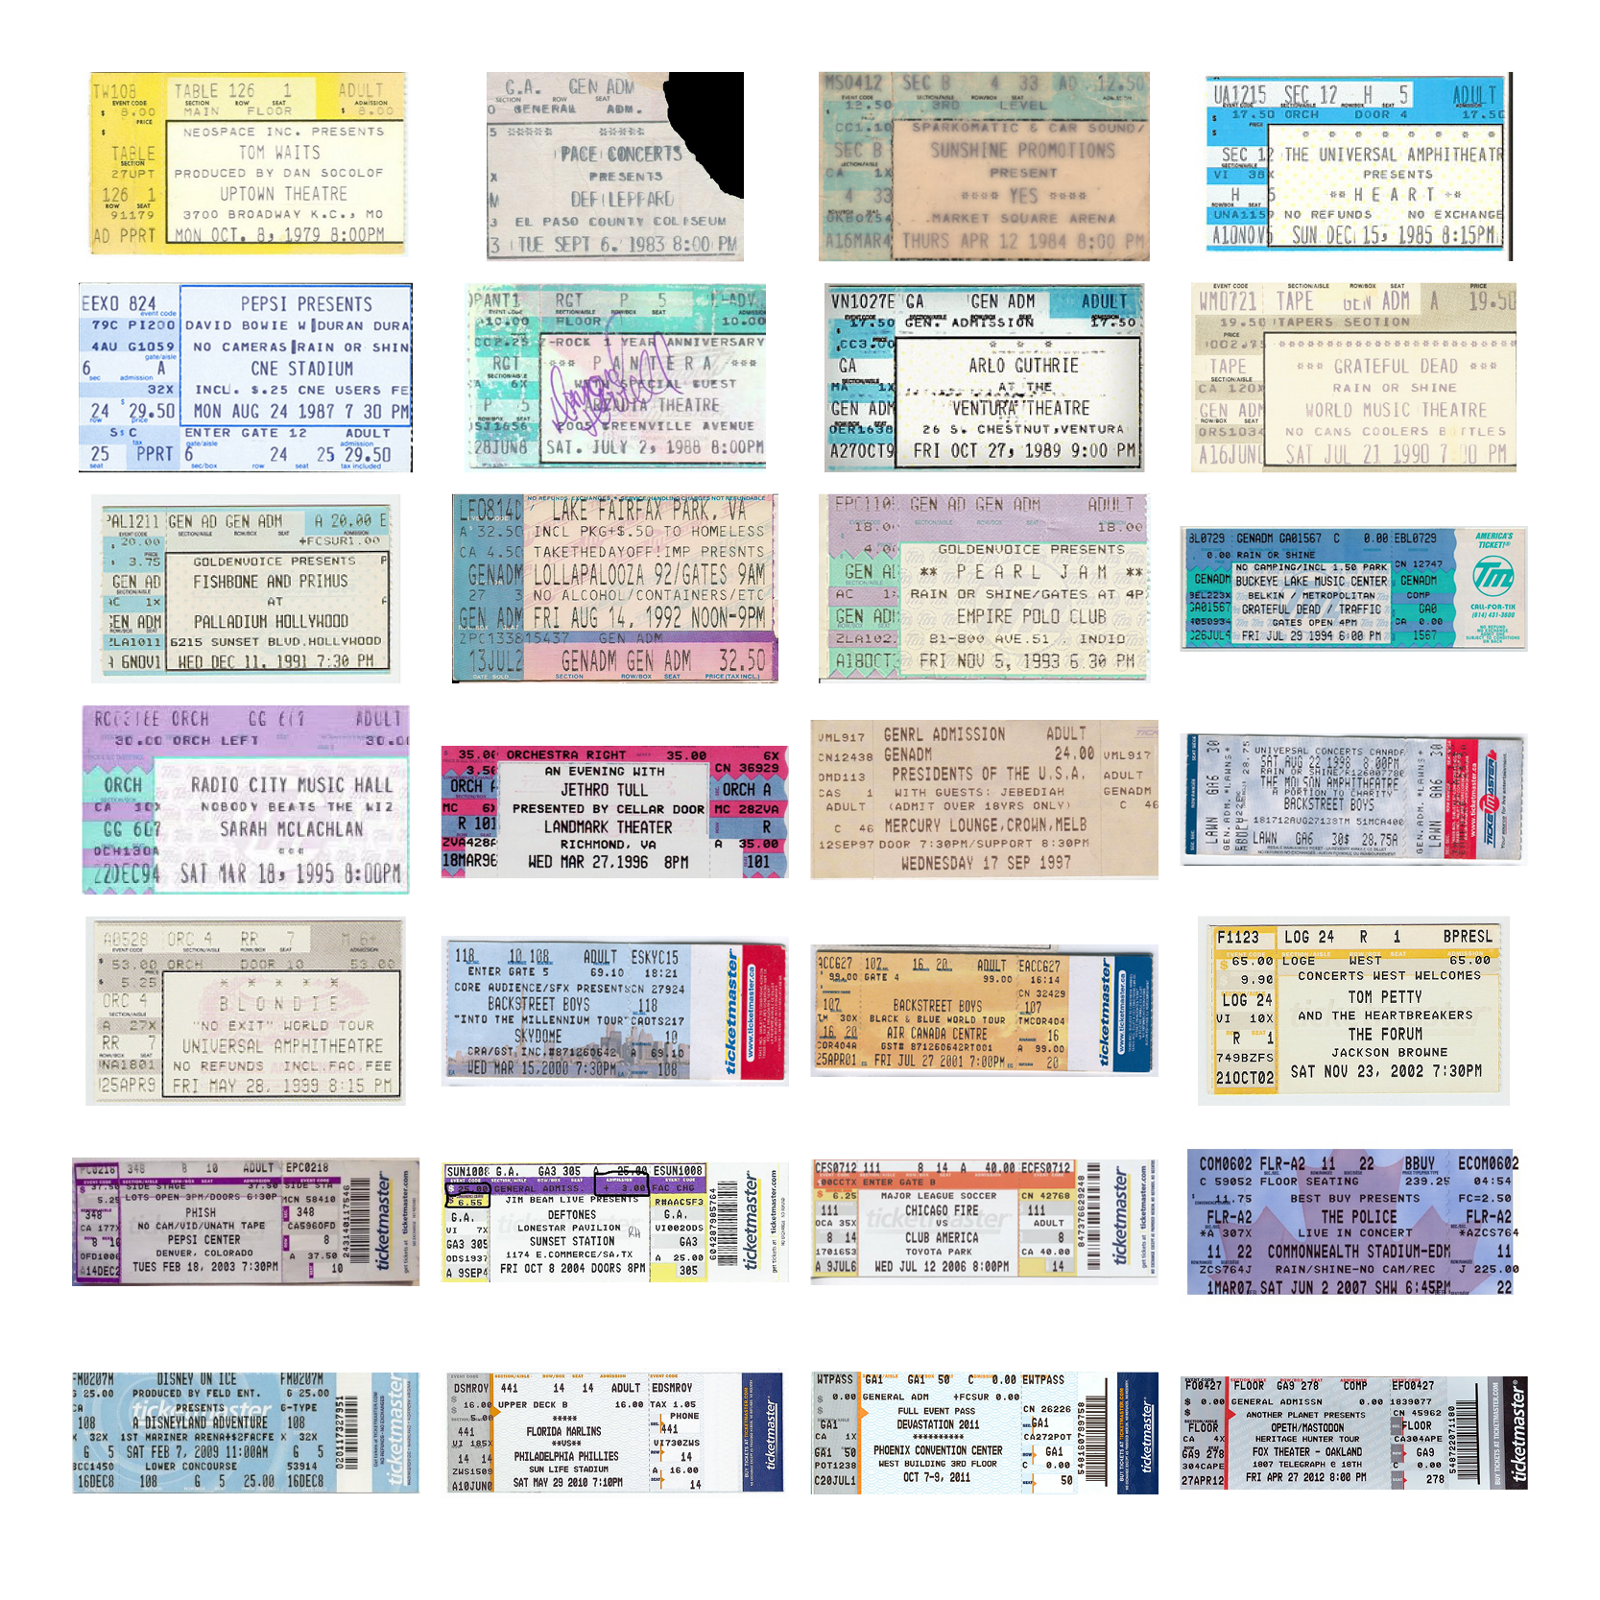 Redesigning ticketmasters tickets portfolio process medium in december of 2013 i wrote an article called dear ticketmaster on medium this open letter addressed ticketmasters uninspiring paper tickets maxwellsz